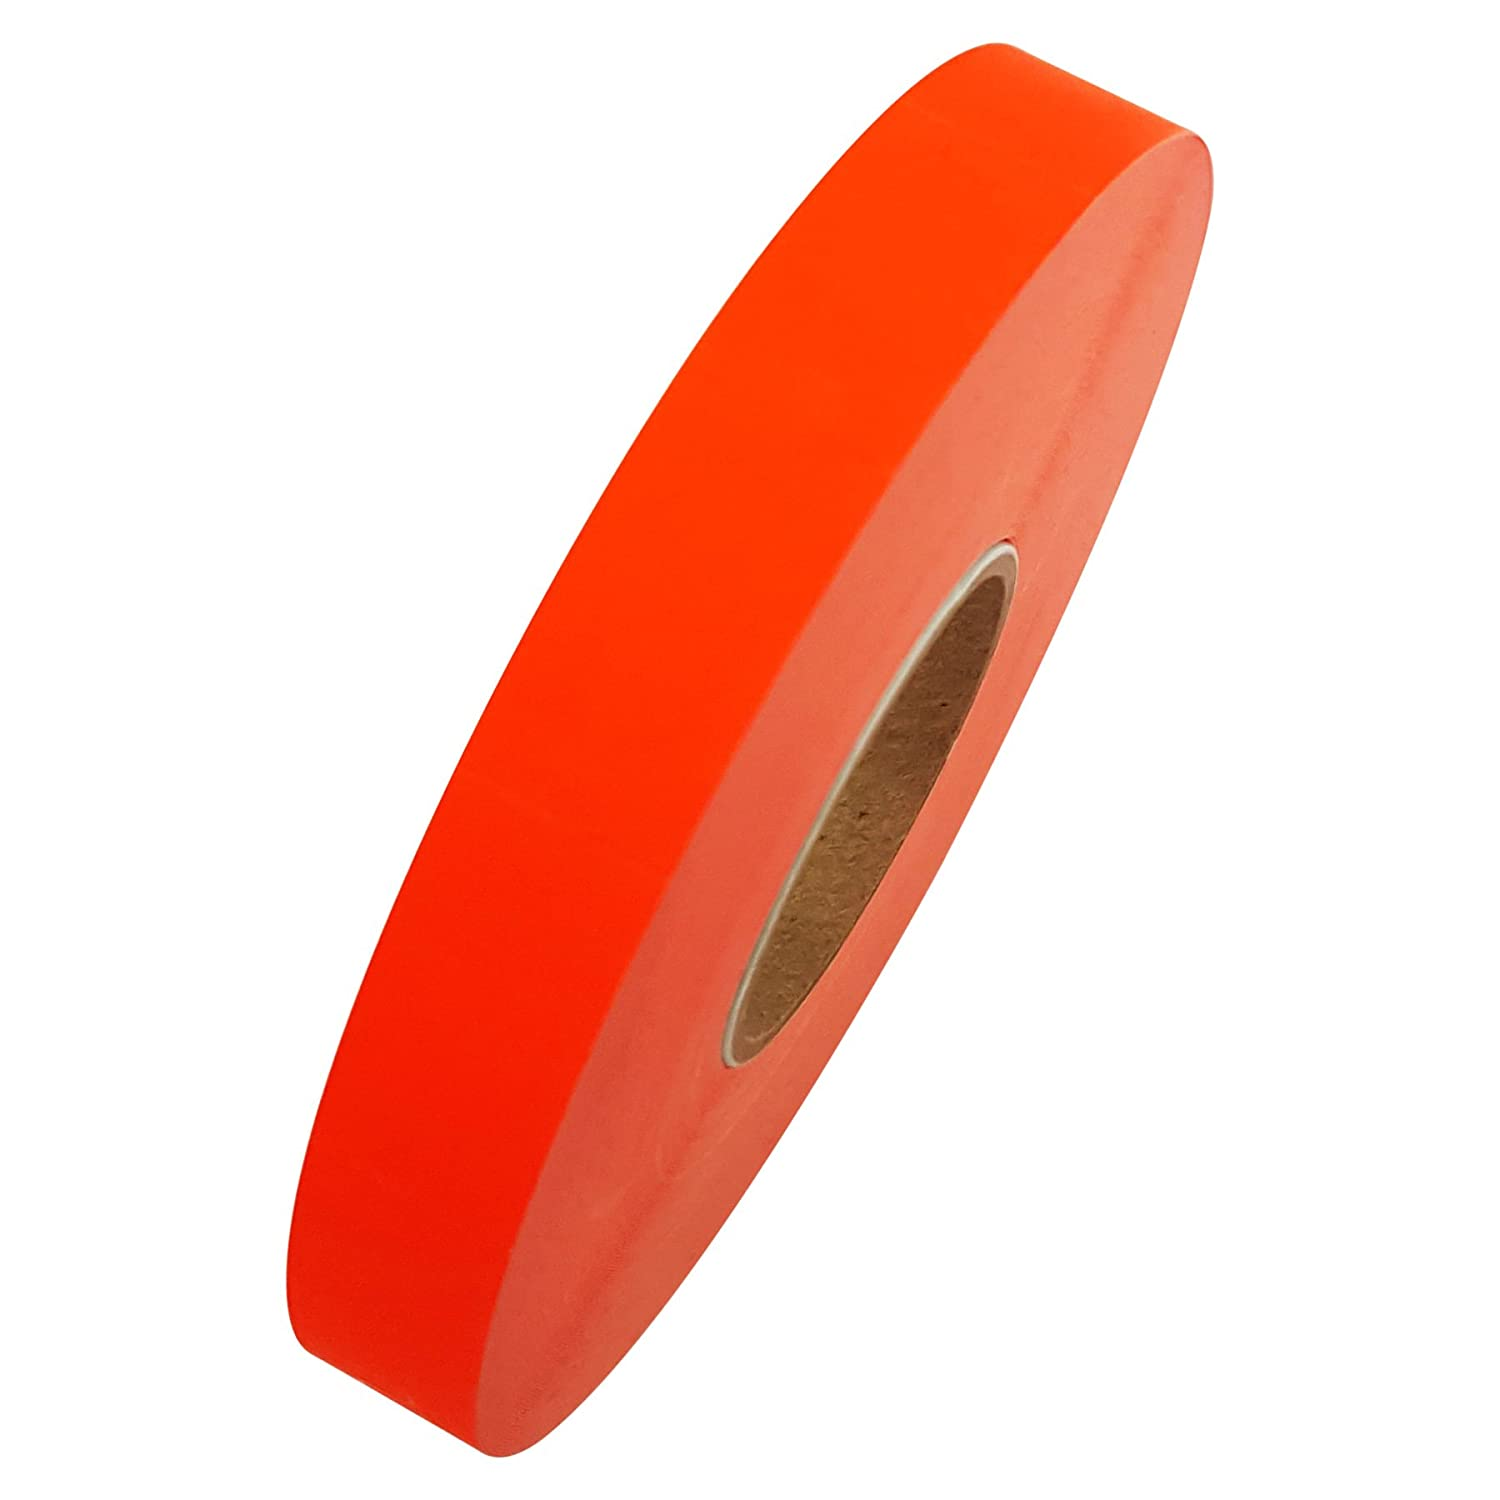 Amram 1 Line 10x19 Fluorescent Red Pricing Marking Labels 1 Sleeve of 16 Rolls 17 000 Labels. Includes 1 Free Ink Roller Replacement. Labels and Ink roller compatible w Monarch 1110.